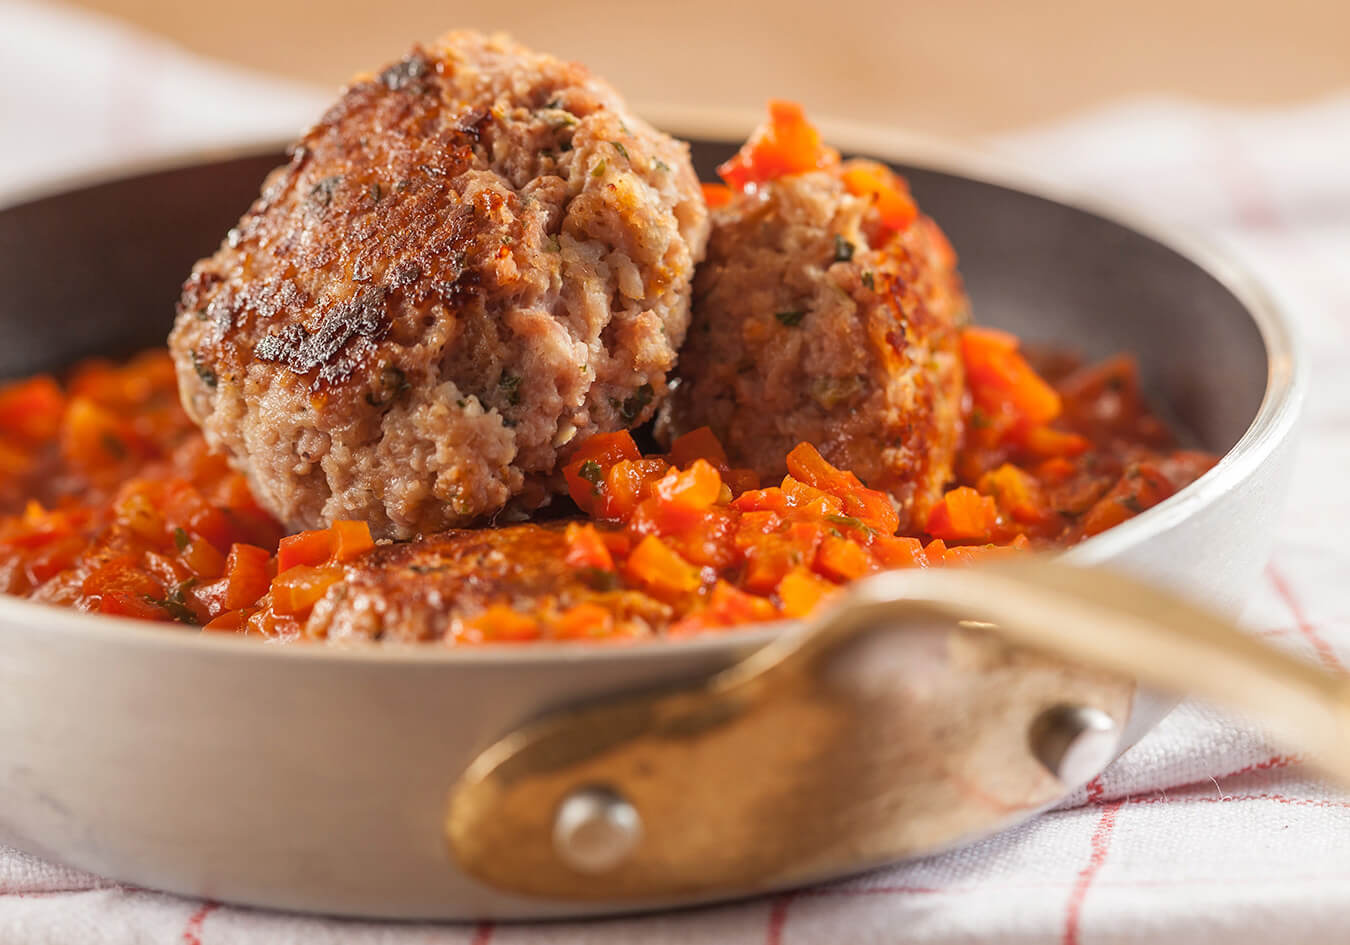 Meatballs in pepper-tomato sauce